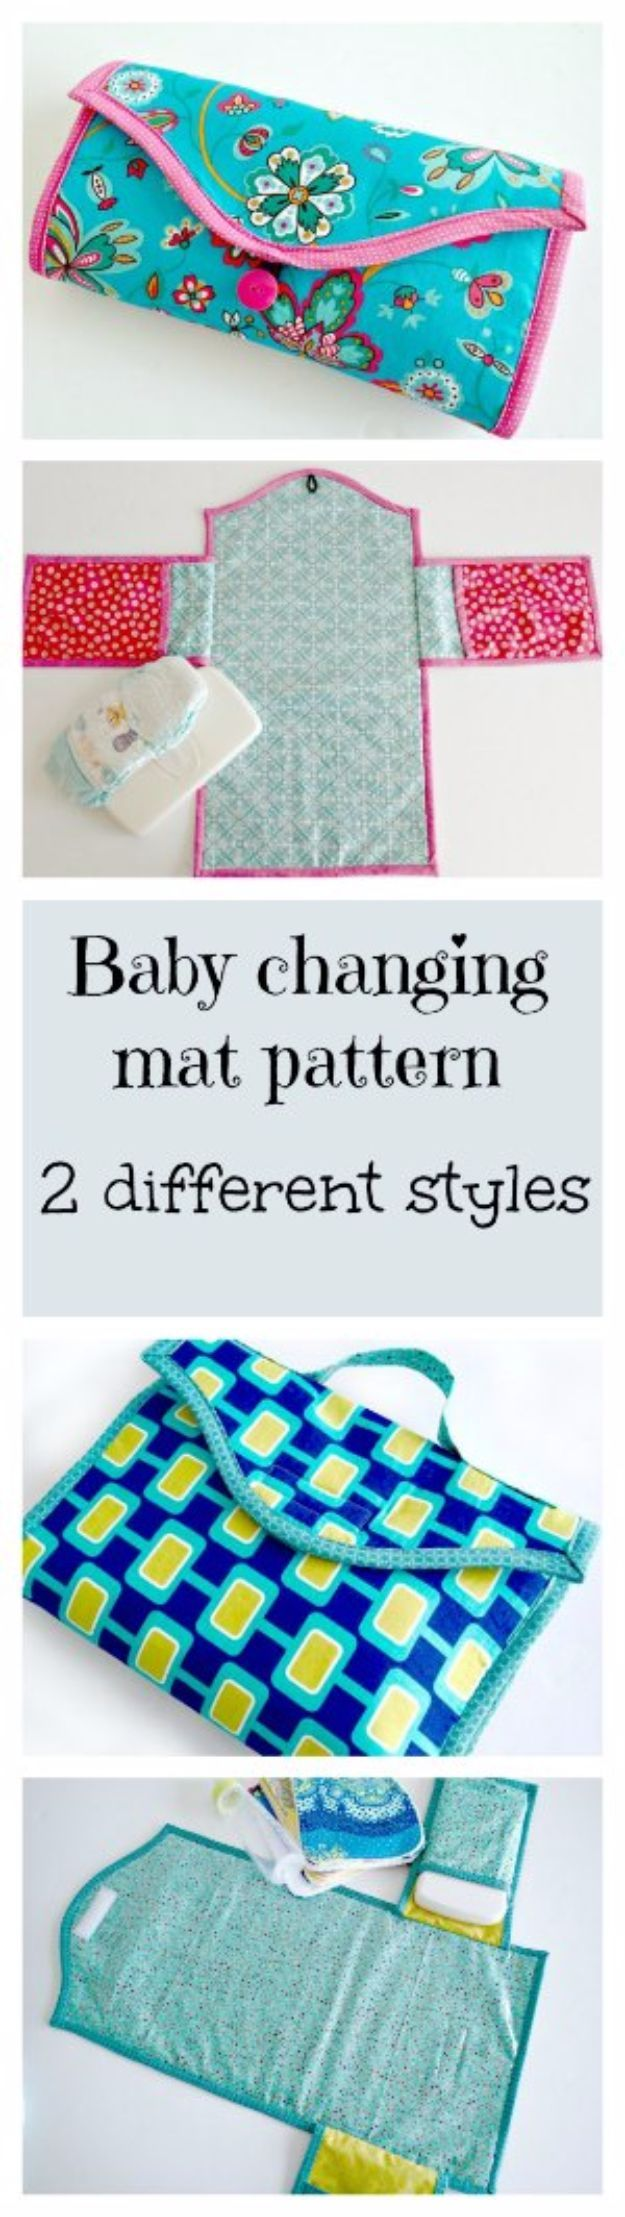 Farg form baby changing table mat grey clouds - The 25 Best Baby Changing Mat Ideas On Pinterest Changing Mat Diaper Changing Pad And Baby Changing Pad